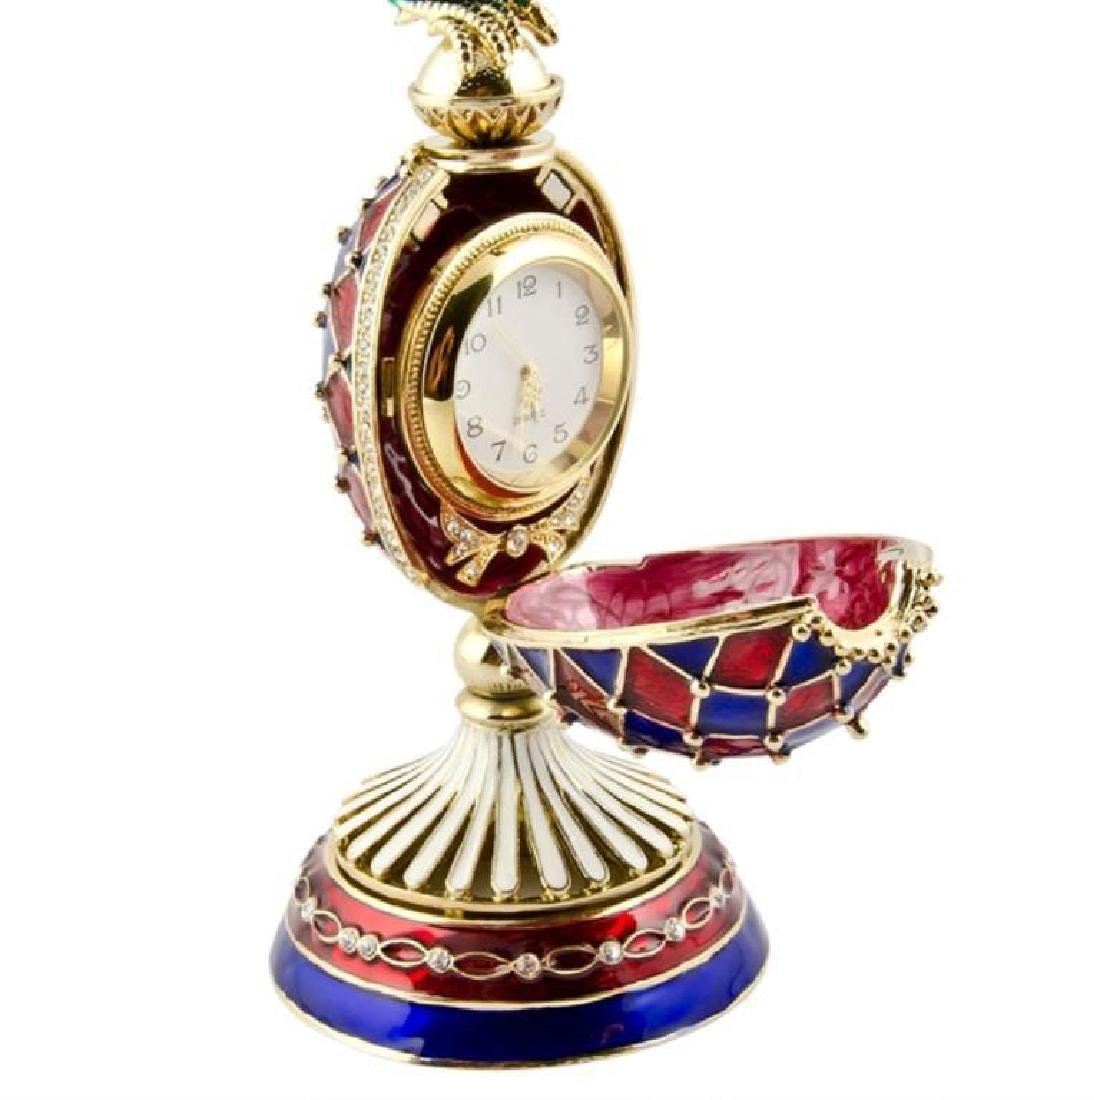 Faberge Inspired Rooster Egg Clock - 4